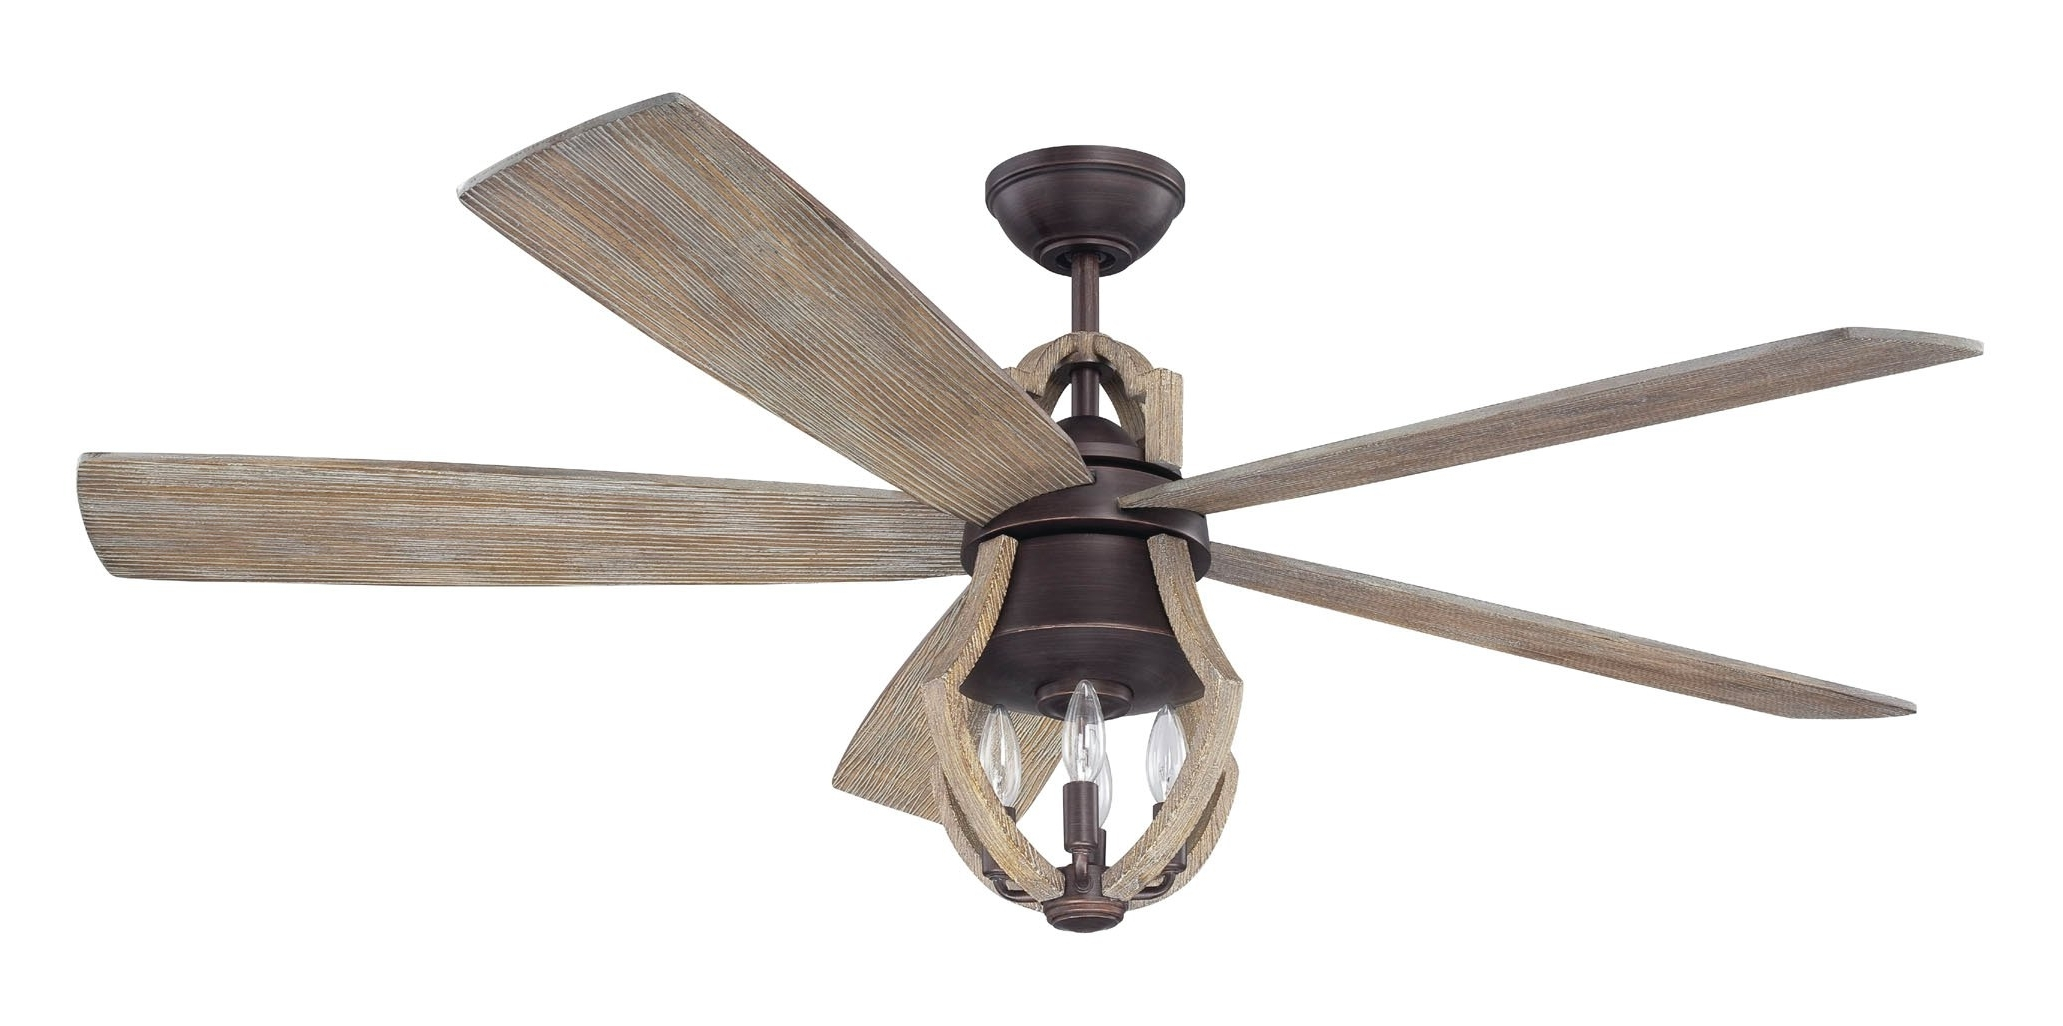 Joss & Main Throughout Current Outdoor Ceiling Fans With Removable Blades (Gallery 10 of 20)